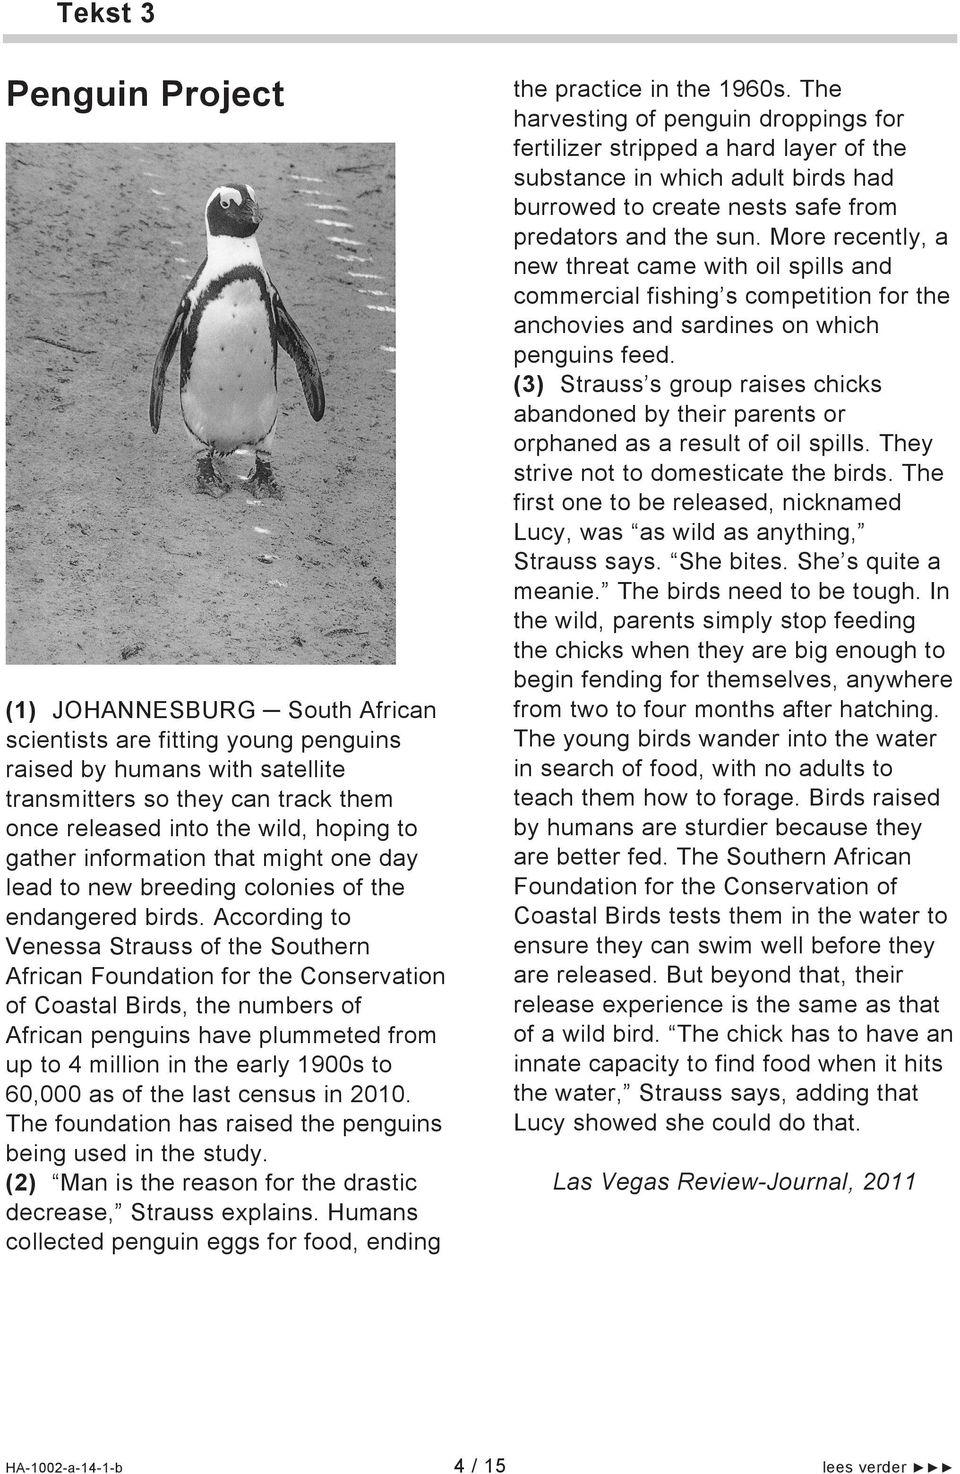 According to Venessa Strauss of the Southern African Foundation for the Conservation of Coastal Birds, the numbers of African penguins have plummeted from up to 4 million in the early 1900s to 60,000